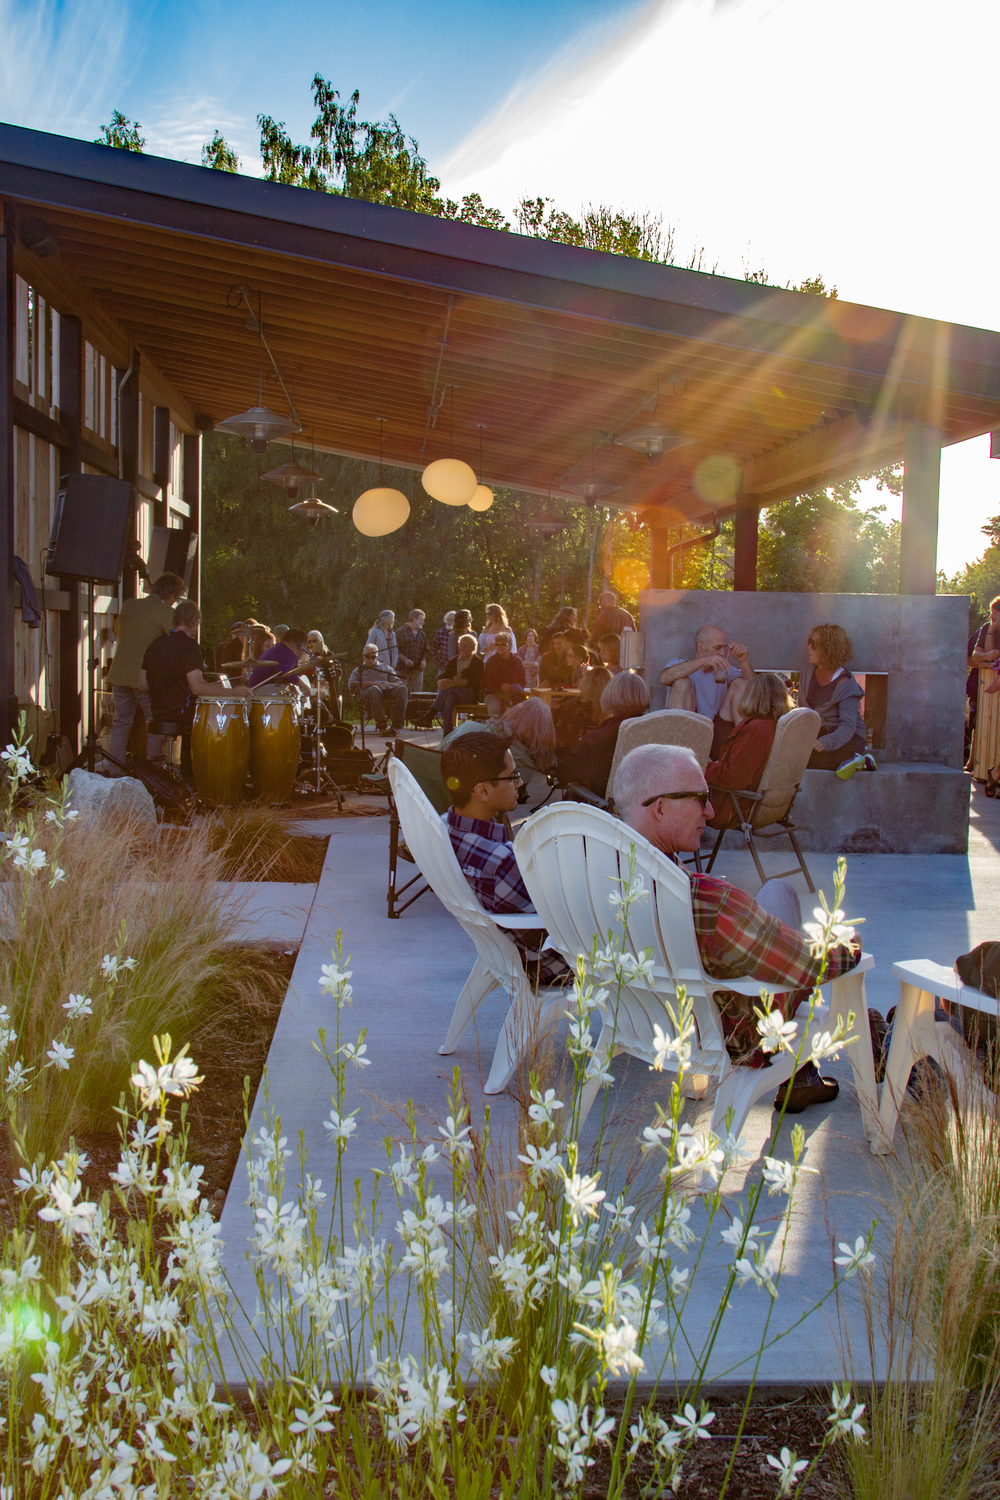 Some'tet at The Lodges on Vashon Summer Concert Series